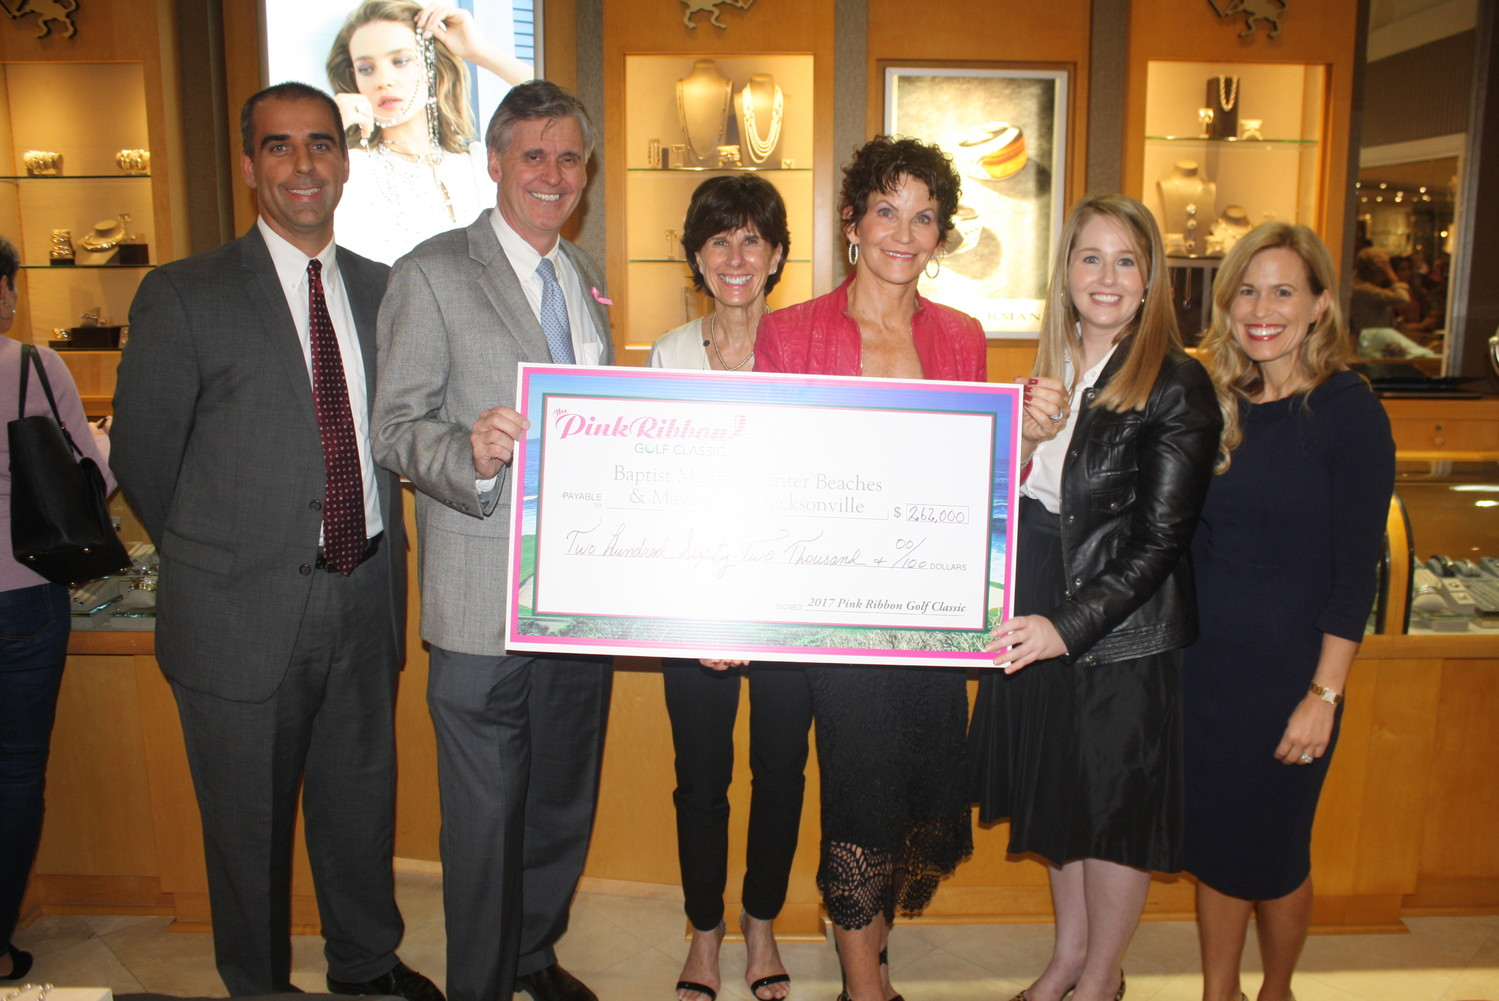 Dr. Ryan Makar and Joe Mitrick of Baptist Medical Center Beaches, Pink Ribbon Golf Classic co-chairs Joanne Ghiloni and Nancy Morrison and Jackie Joy and Dr. Dawn Mussallem of Mayo Clinic-Jacksonville display the check total of $262,000, a record amount raised by the Ponte Vedra fundraiser.